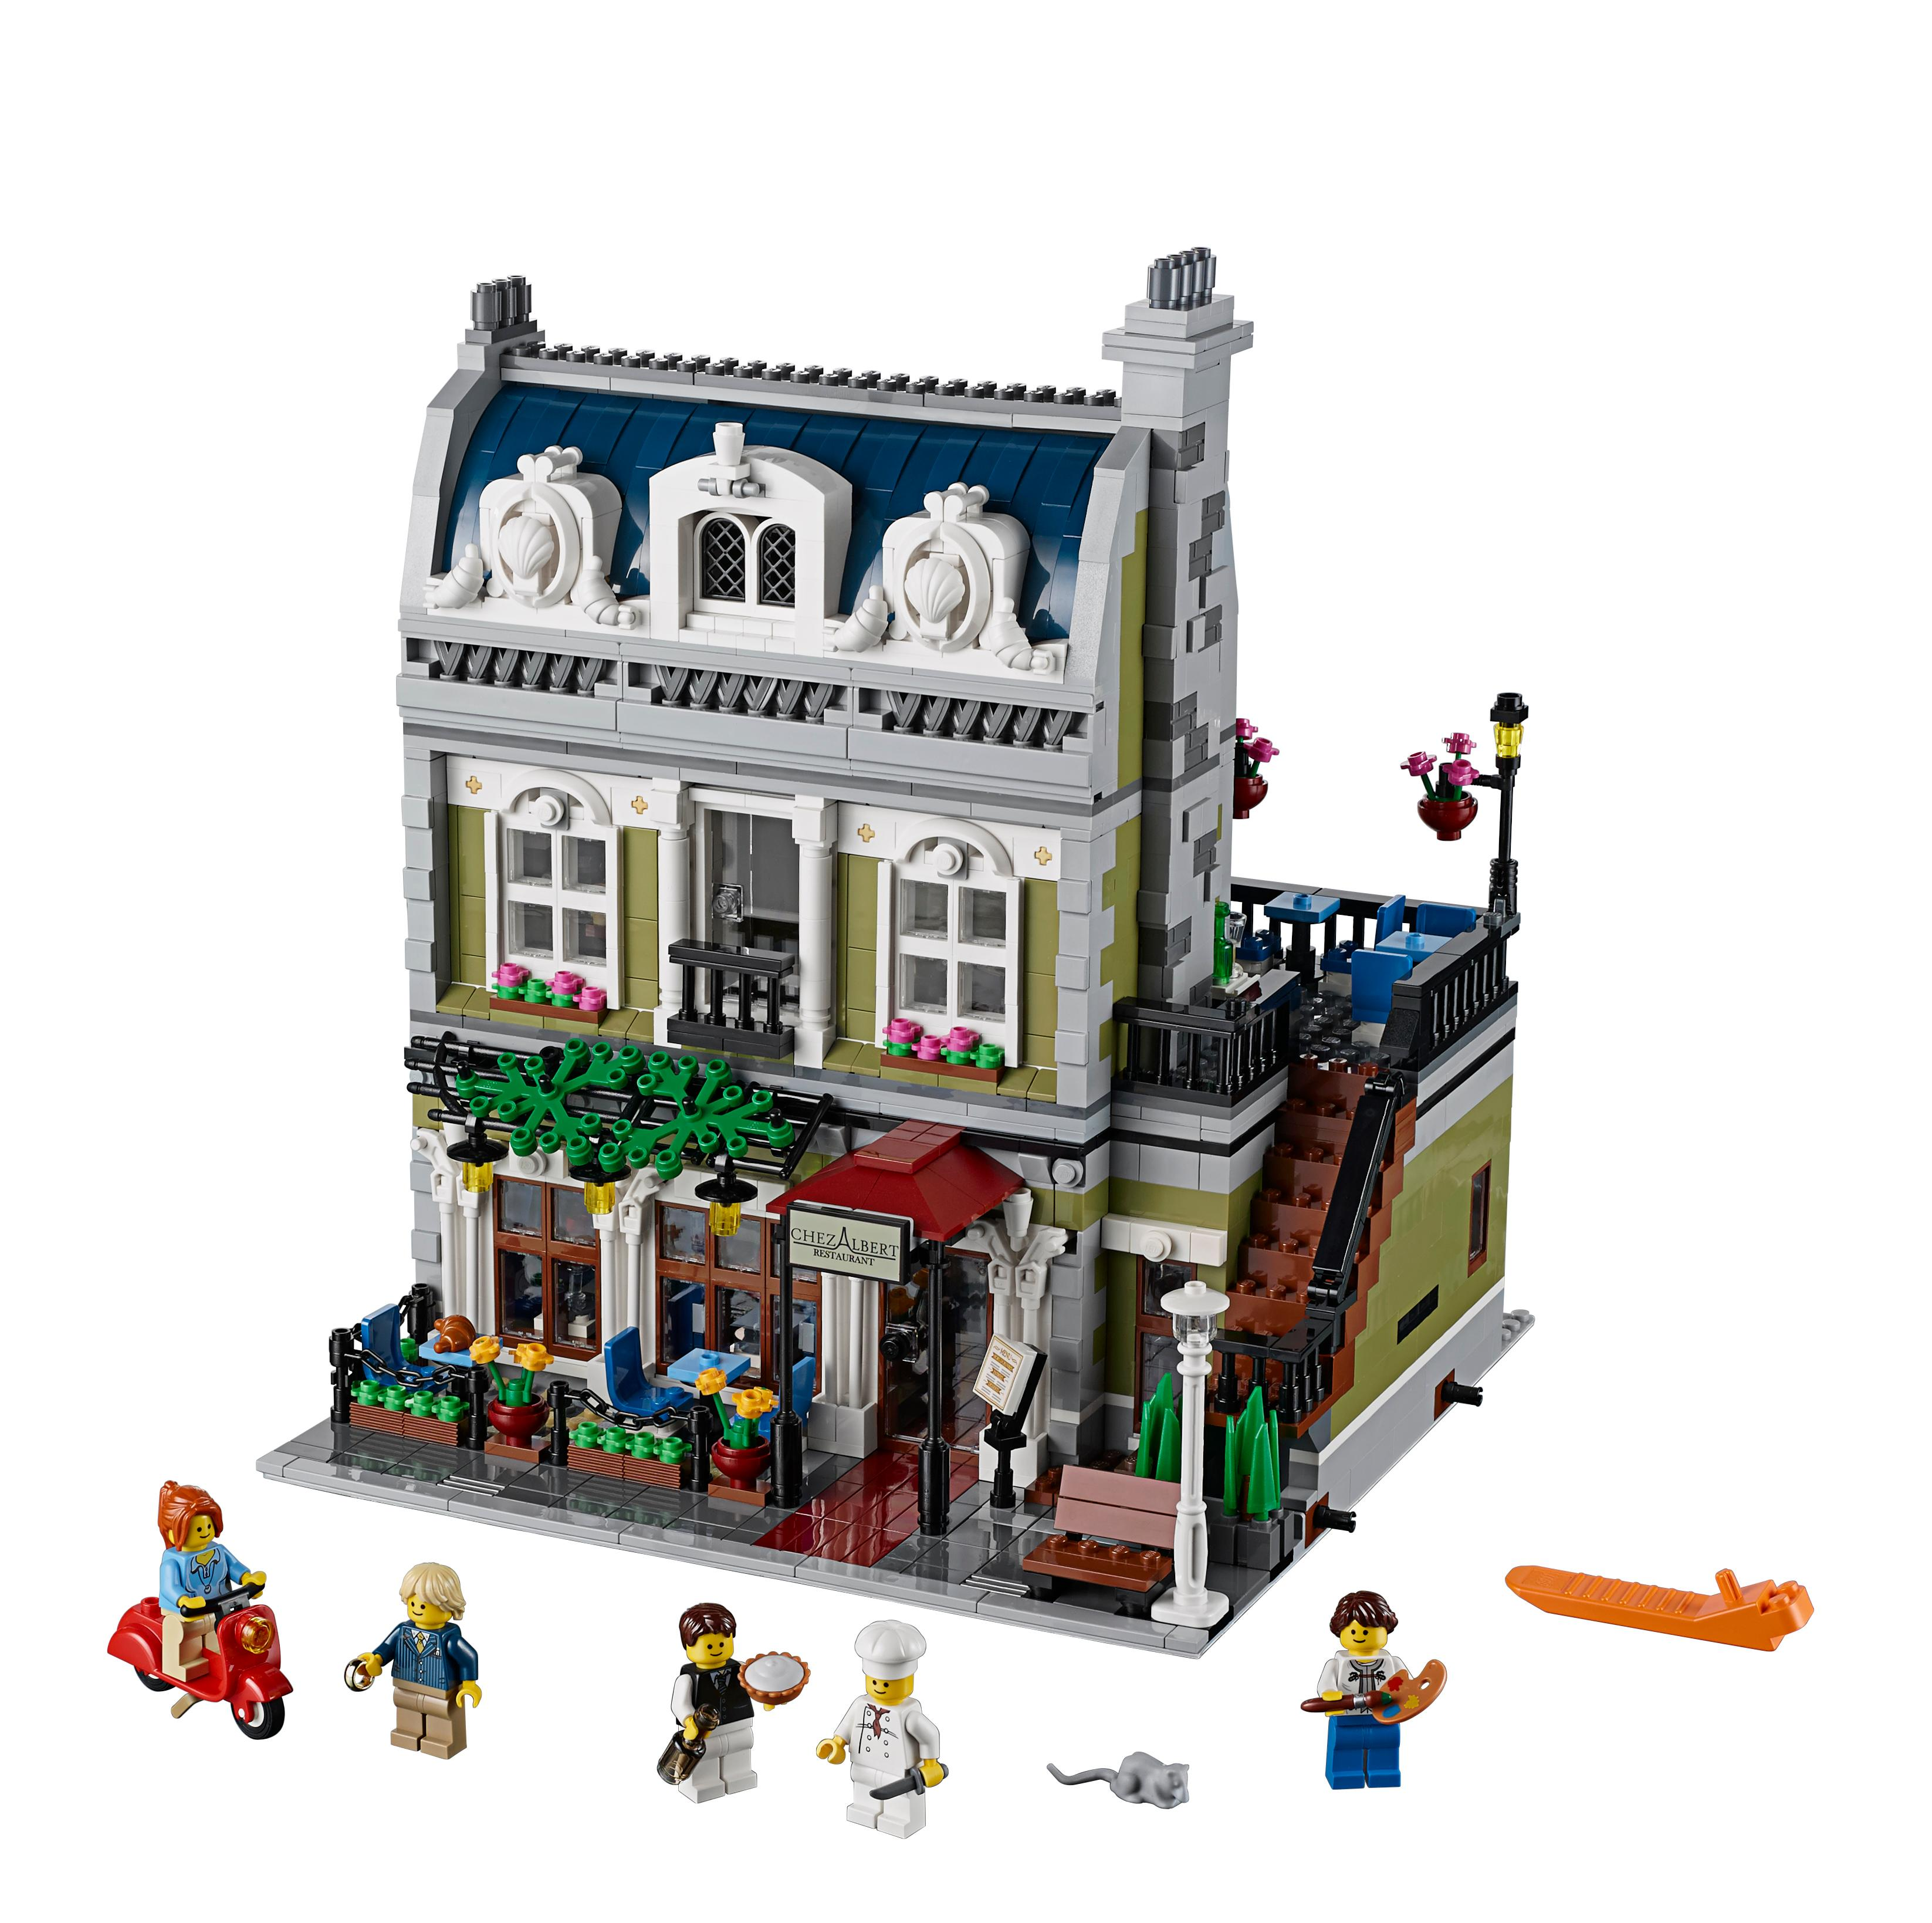 All Lego Toys : Amazon lego creator expert parisian restaurant